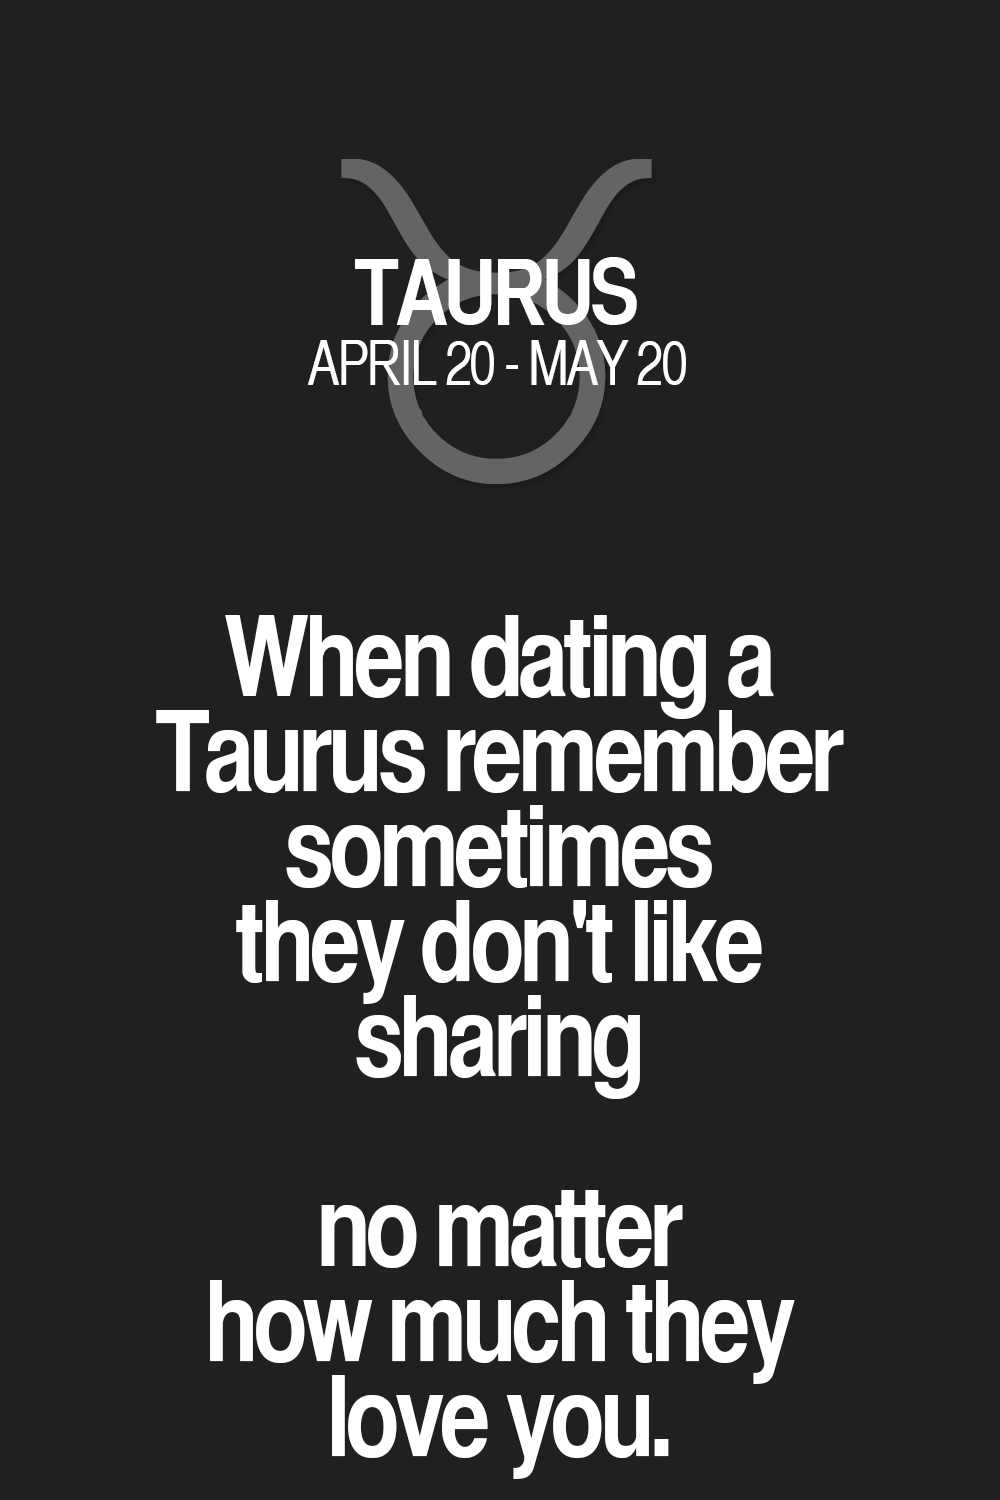 cons of dating a taurus woman